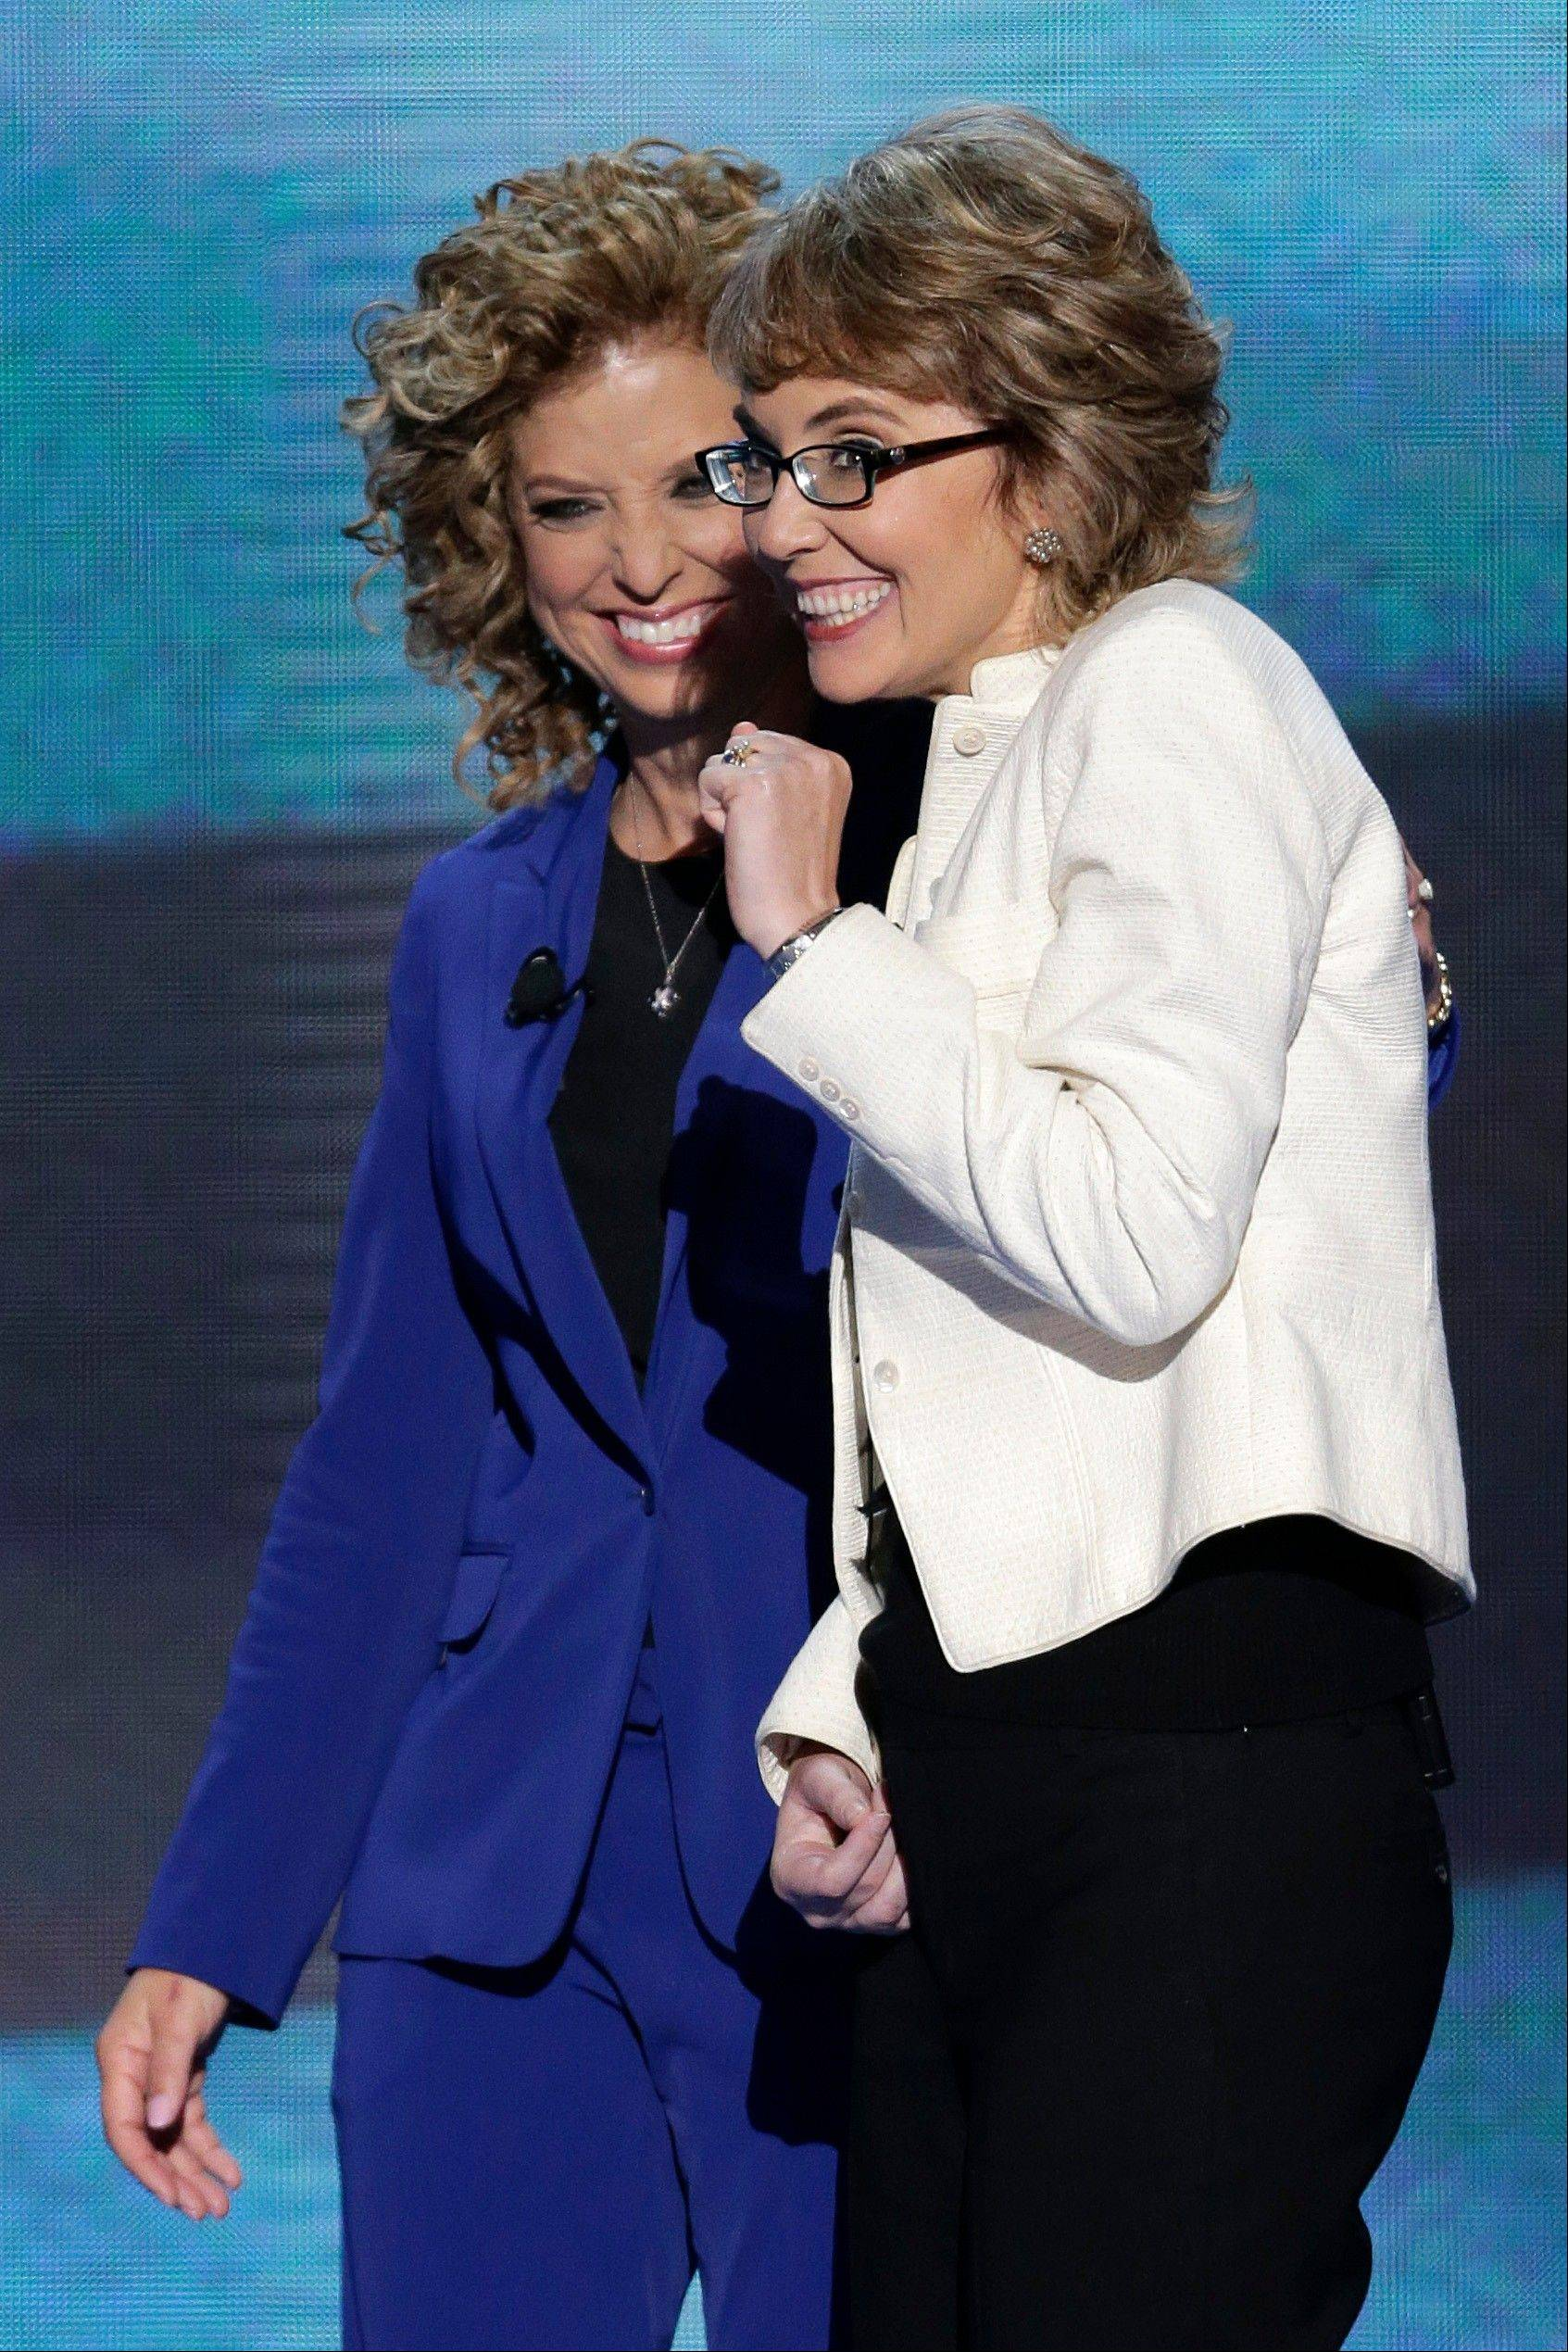 Former Rep. Gabrielle Giffords reacts after reciting the Pledge of Allegiance with Democratic National Committee Chairwoman Rep. Debbie Wasserman Schultz of Florida at the Democratic National Convention in Charlotte, N.C., on Thursday, Sept. 6, 2012.